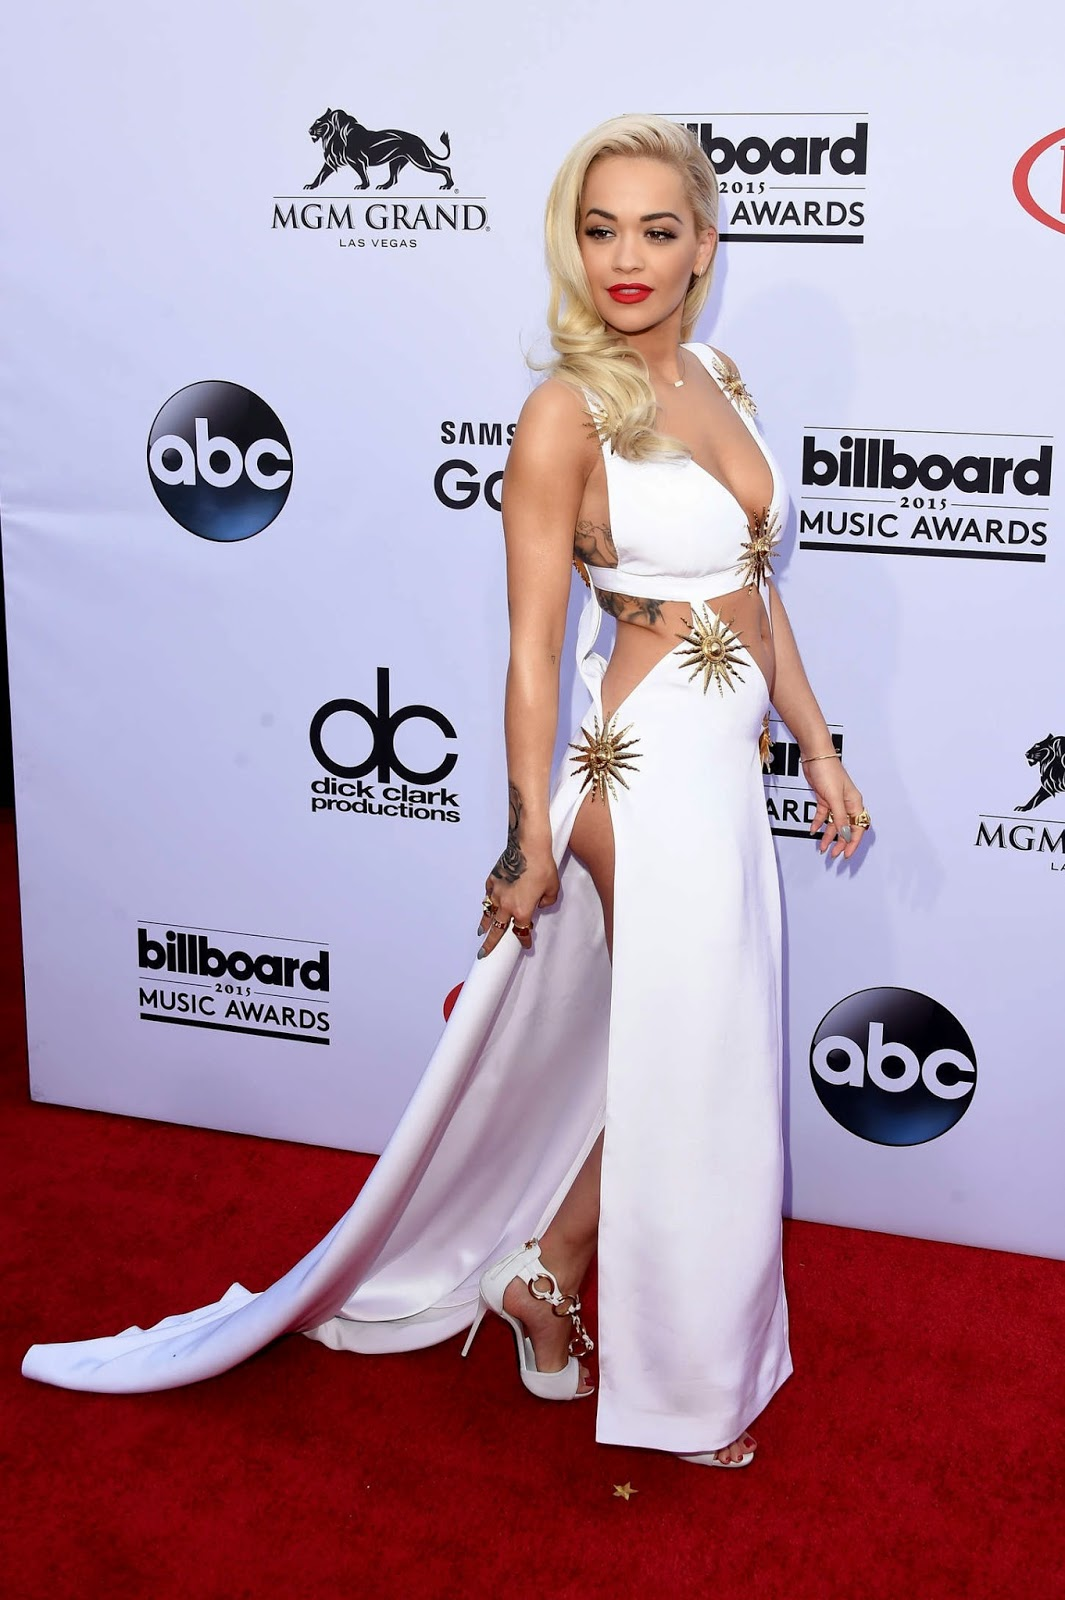 Revealing And Exploring Meaning In The Tarot: Rita Ora Wears A Revealing Outfit To The 2015 Billboard